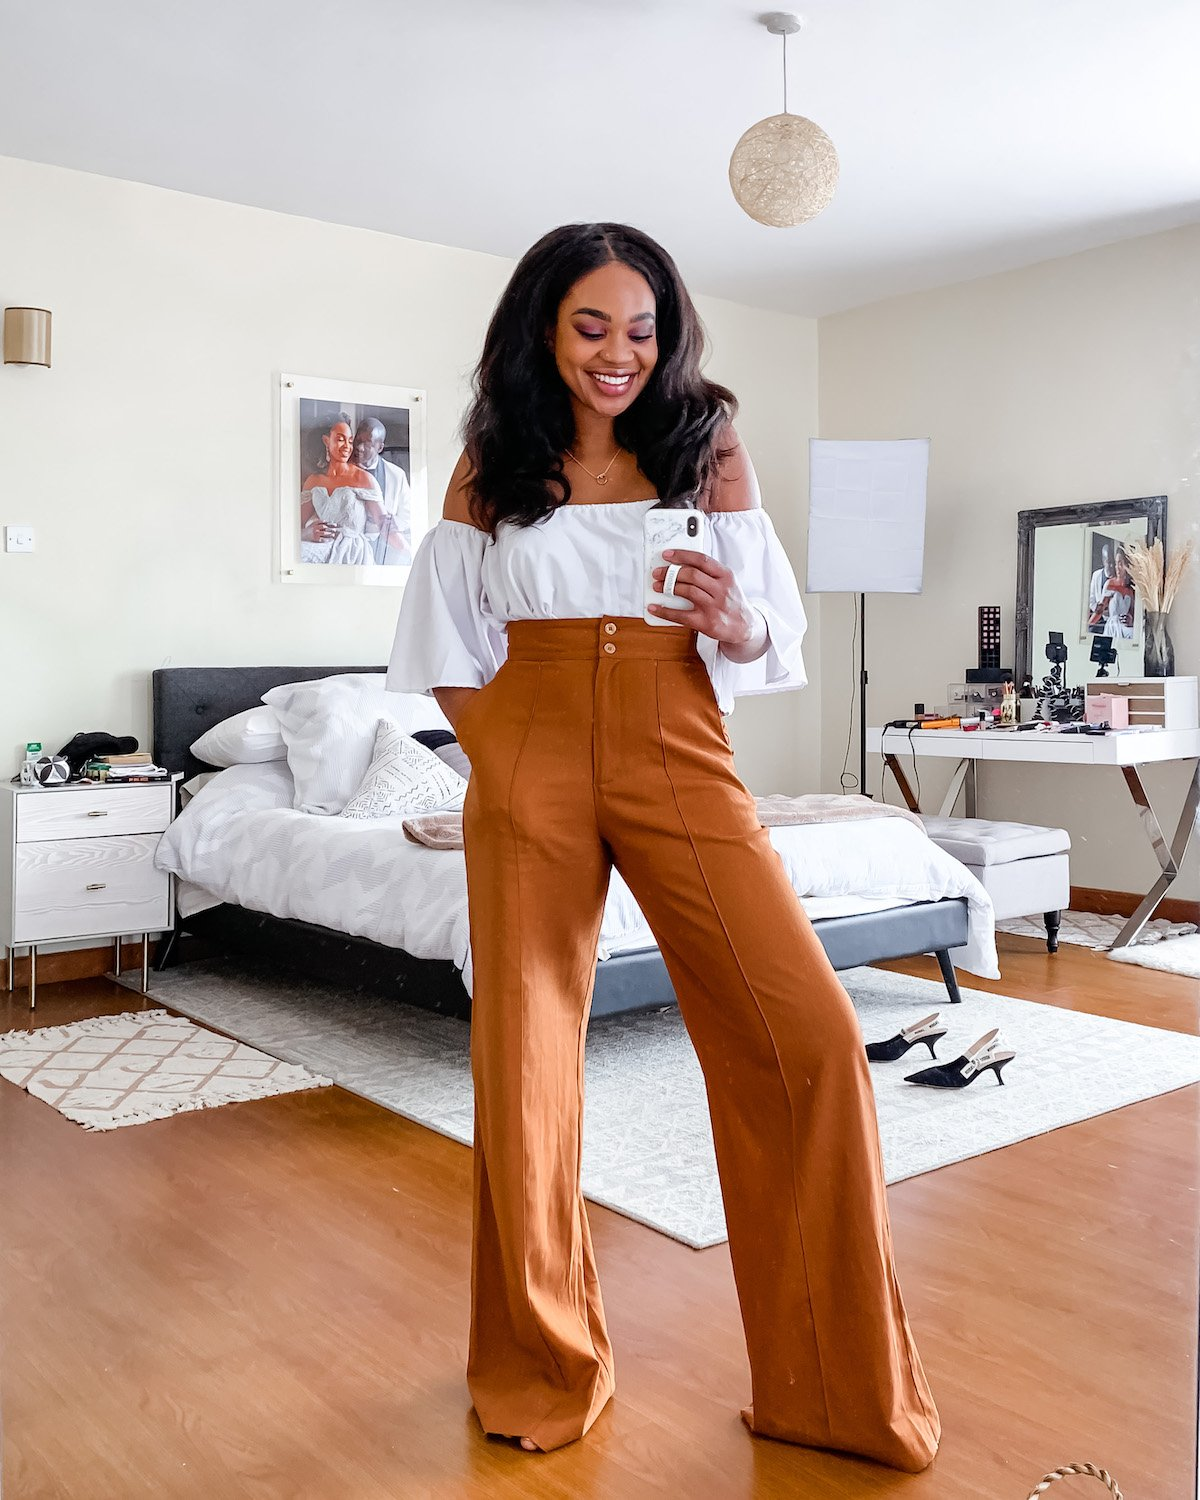 Ijeoma Kola in white off-the-shoulder top and brown wide leg pants from black owned fashion brands